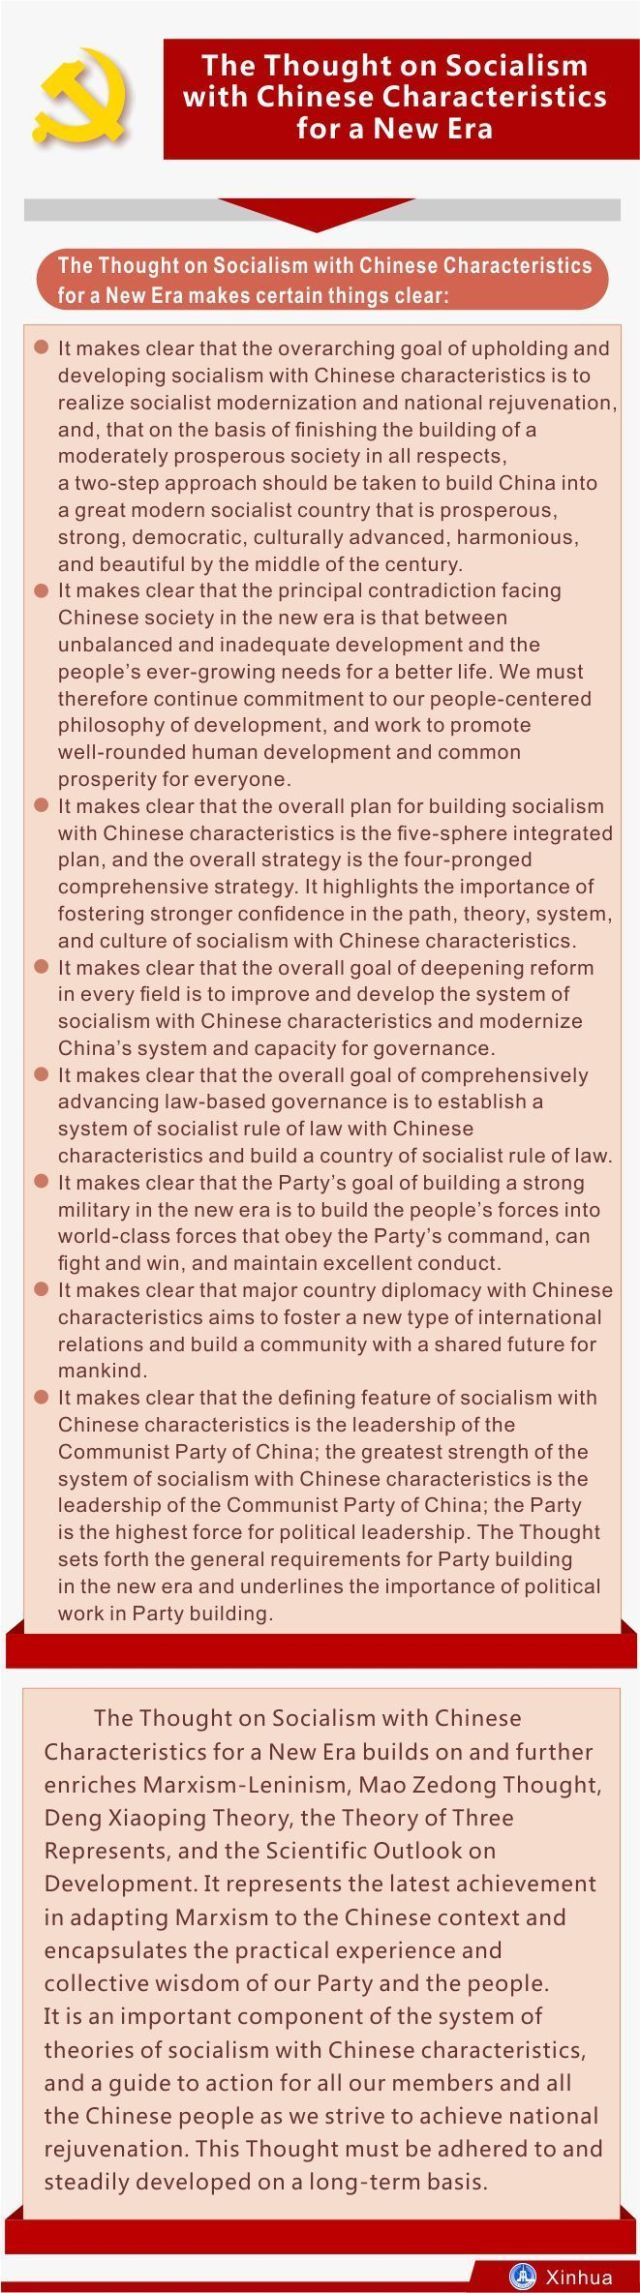 [GRAPHICS]CHINA-CPC NATIONAL CONGRESS-REPORT-THOUGHT